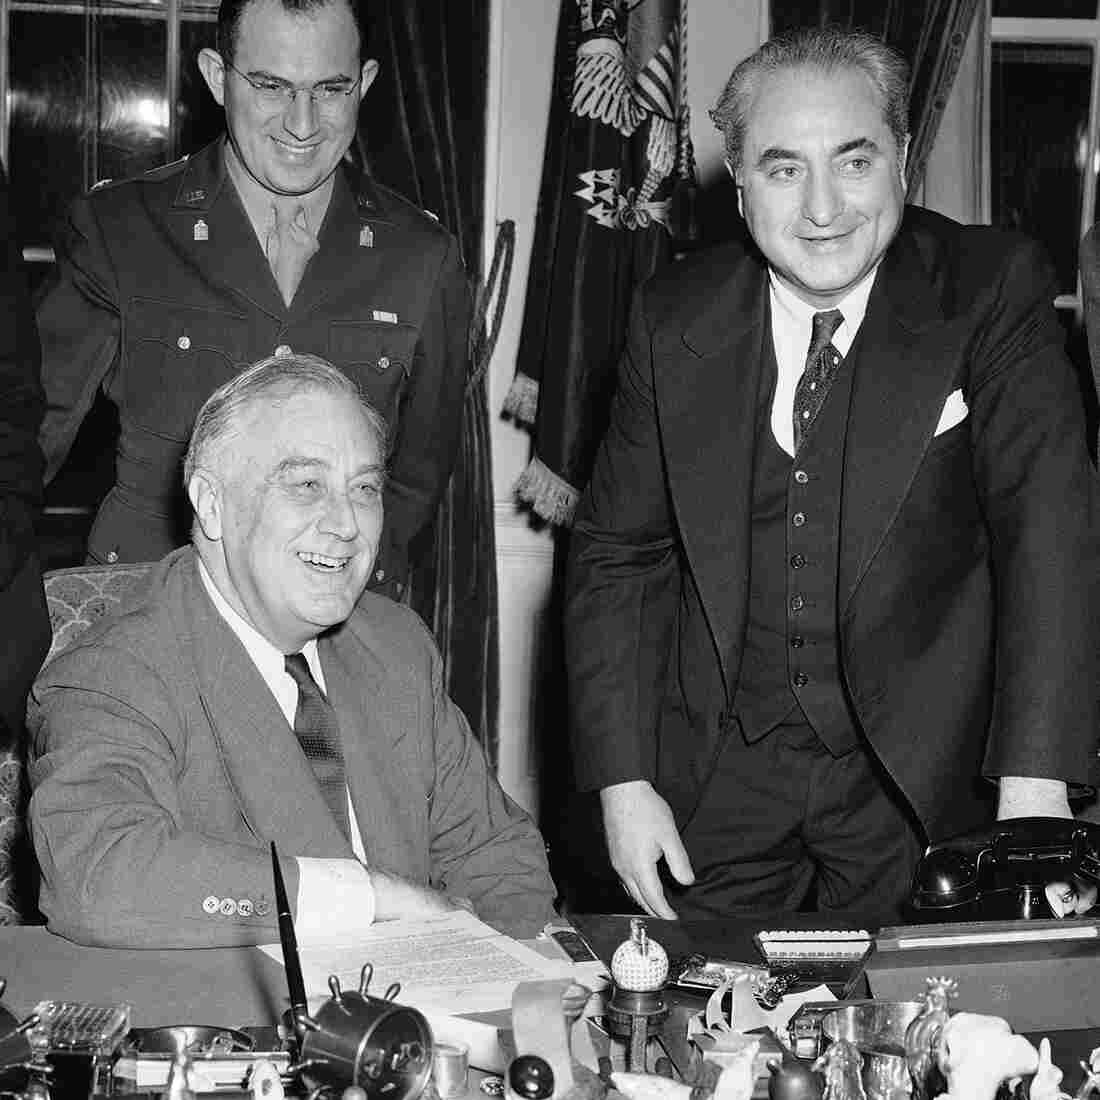 'FDR And The Jews' Puts A President's Compromises In Context